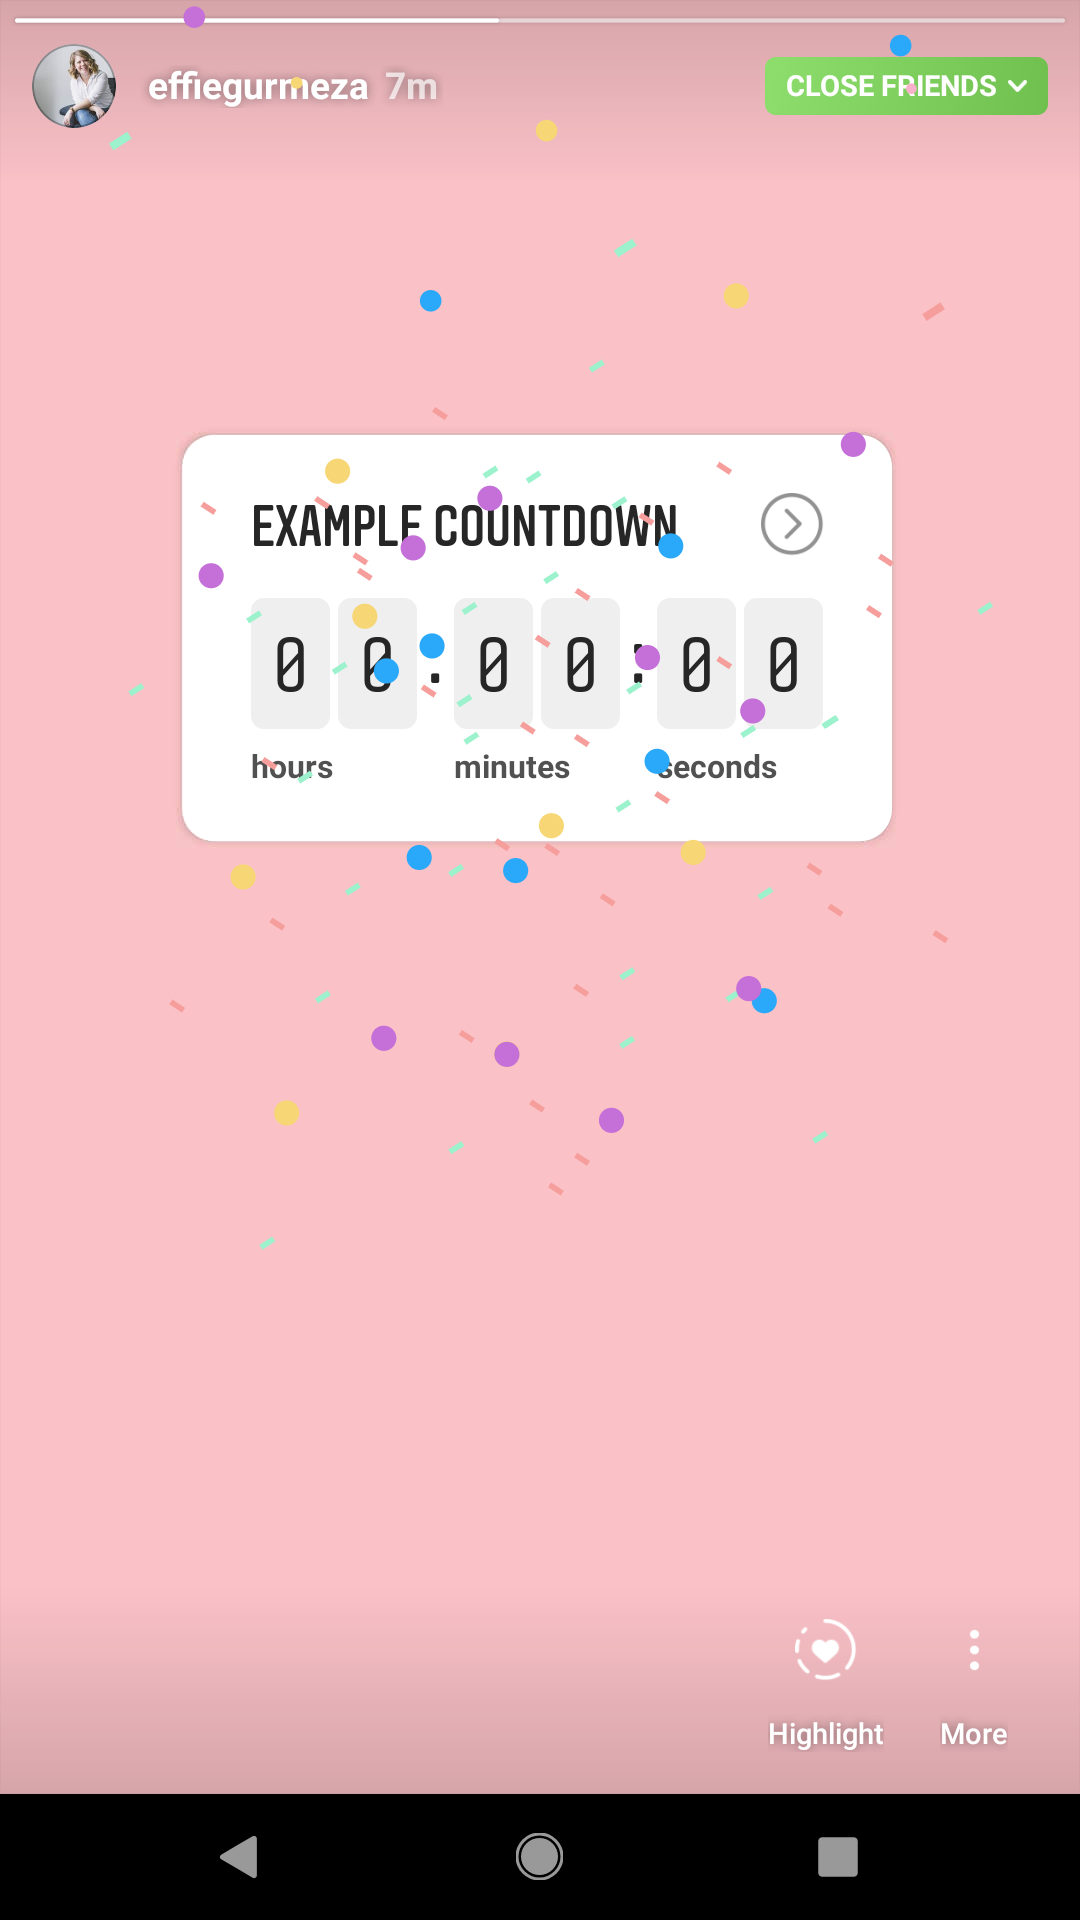 When the timer is up there will be a fun confetti blast!